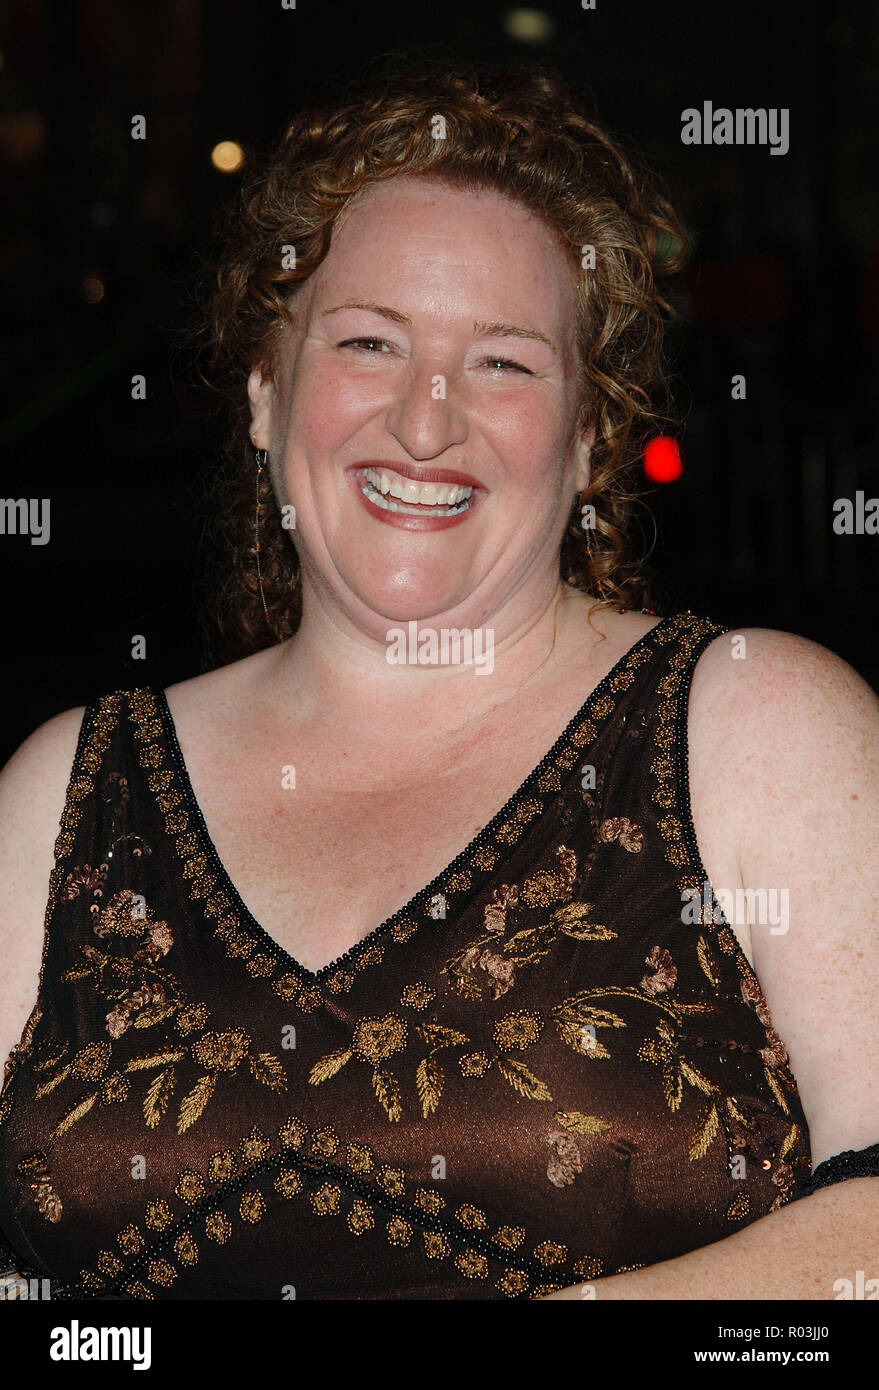 Communication on this topic: Diane Morgan, rusty-schwimmer/